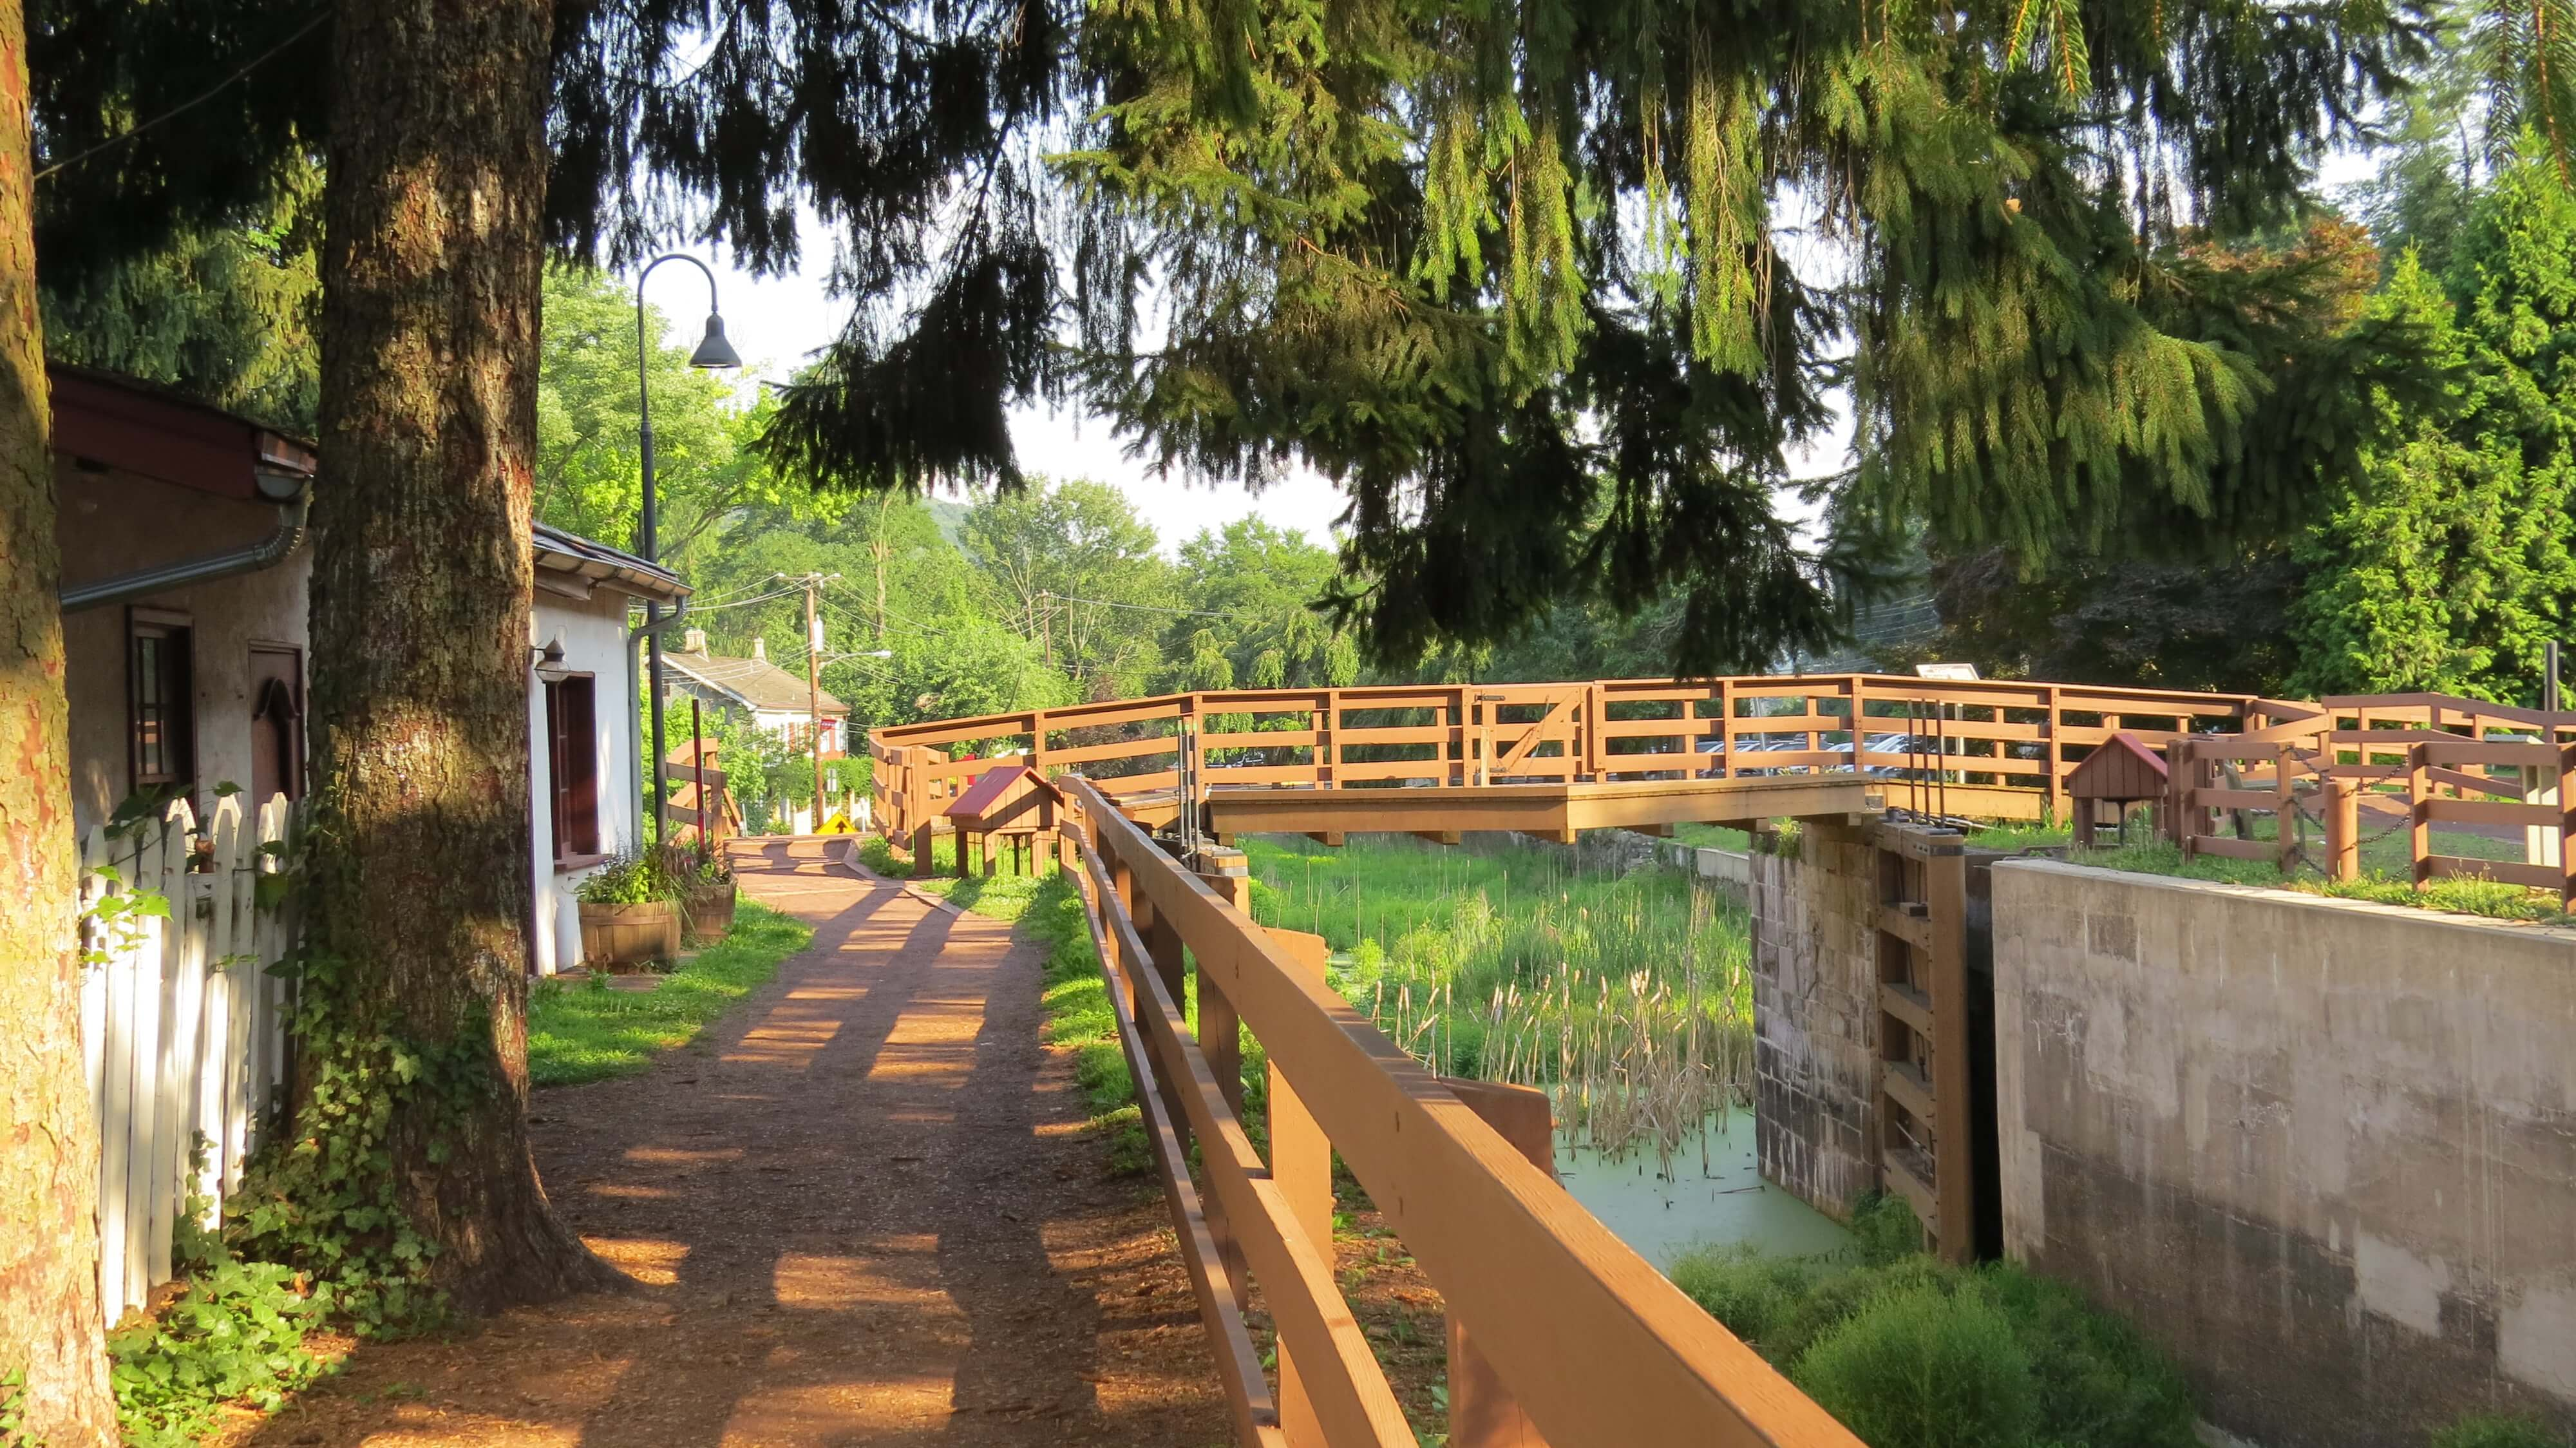 delaware canal tow path